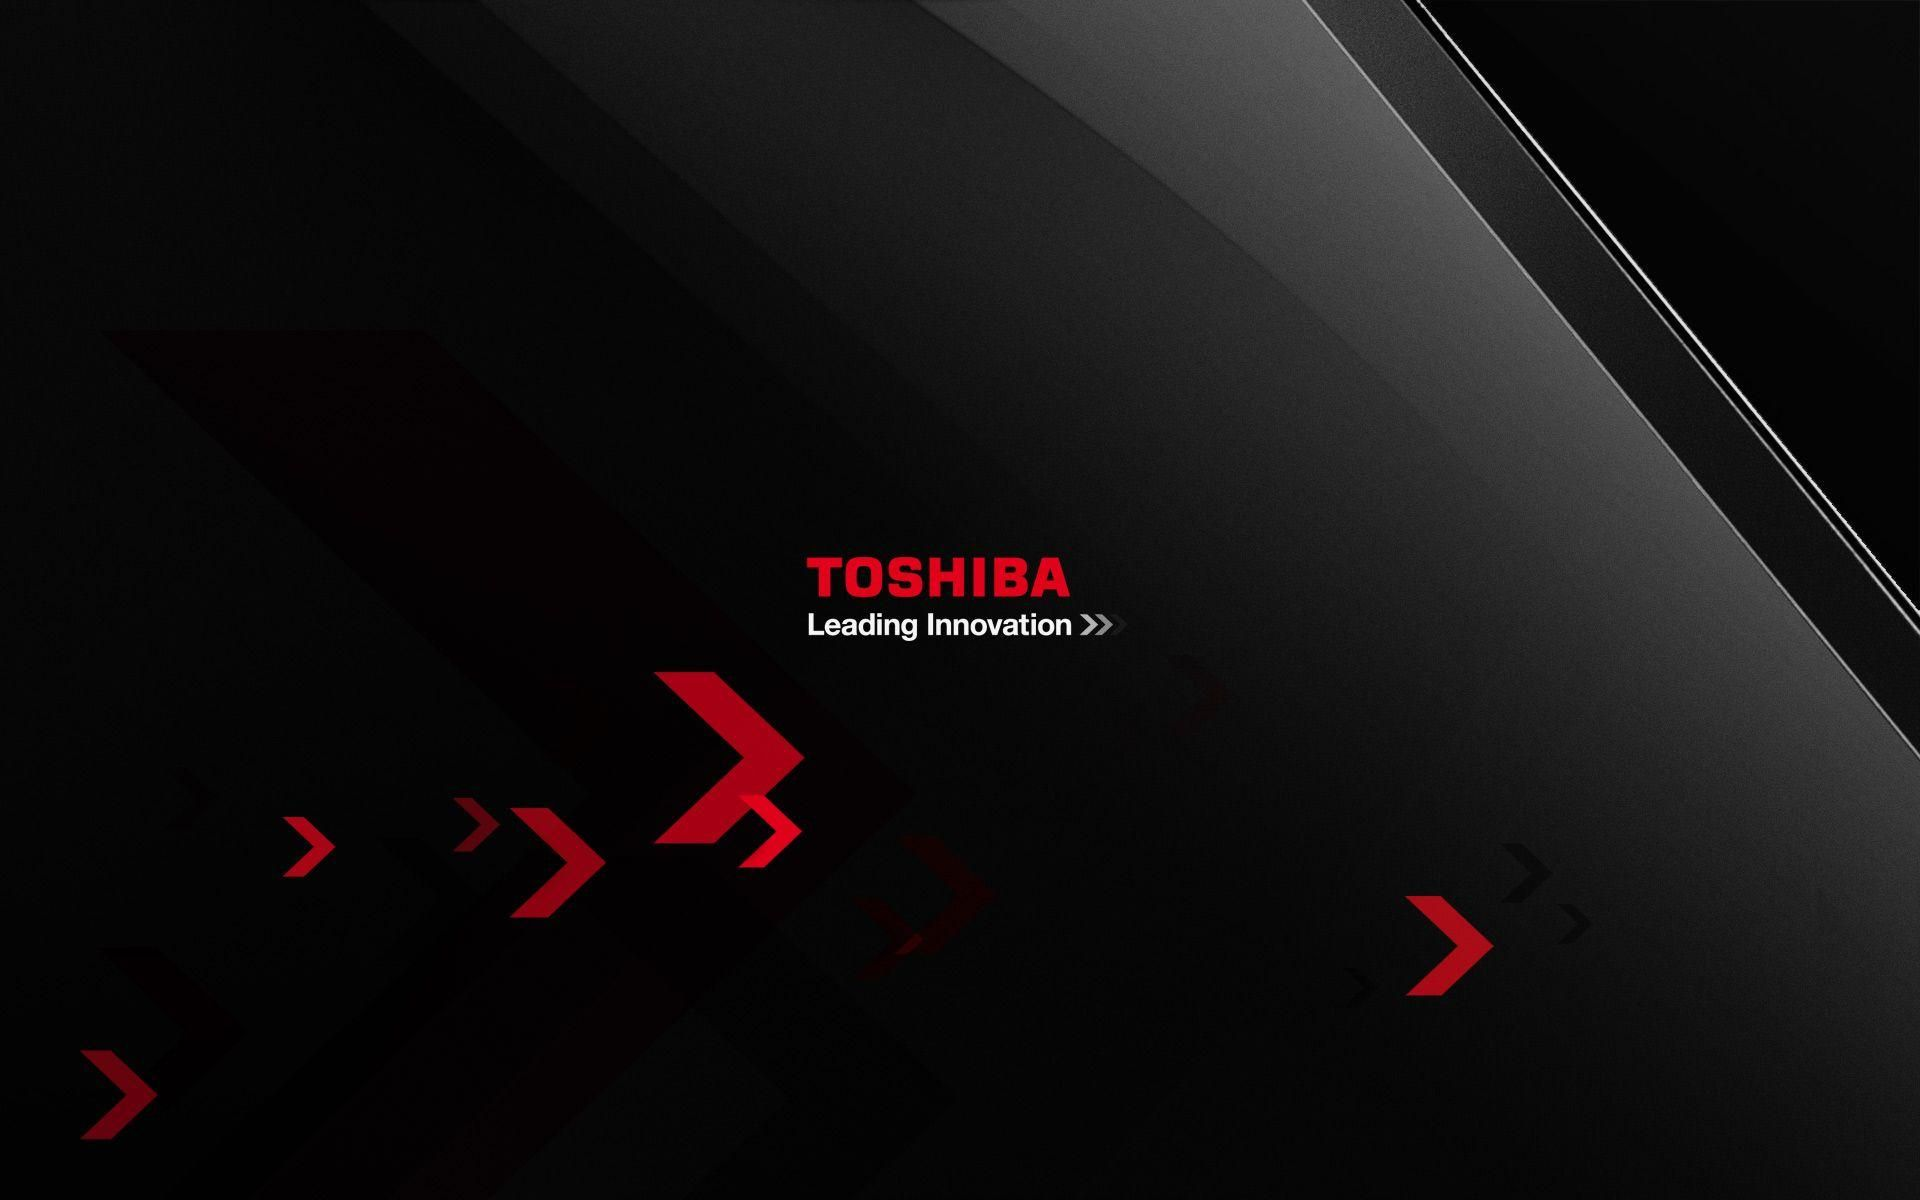 Download Gambar Wallpaper Hd Laptop Toshiba Terbaru 2020